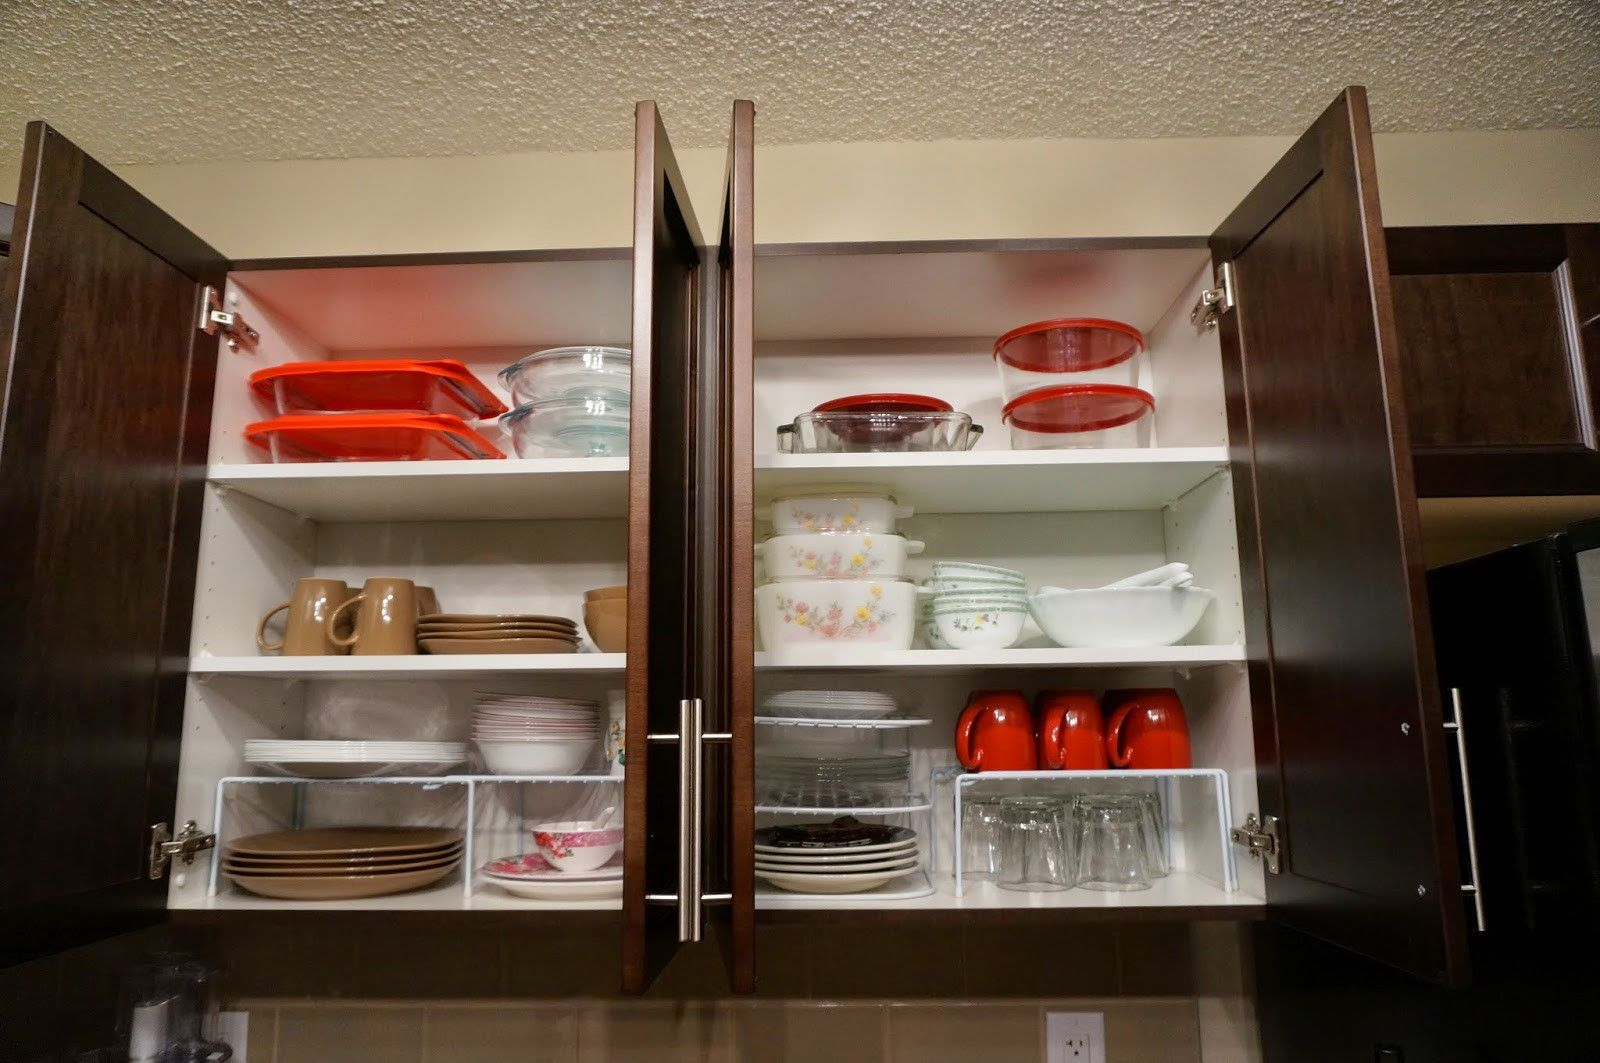 Organizing Kitchen Cabinets Small Kitchen Part - 17: 20+ Ways To Organize Kitchen Cabinets - Small Kitchen Island Ideas With  Seating Check More